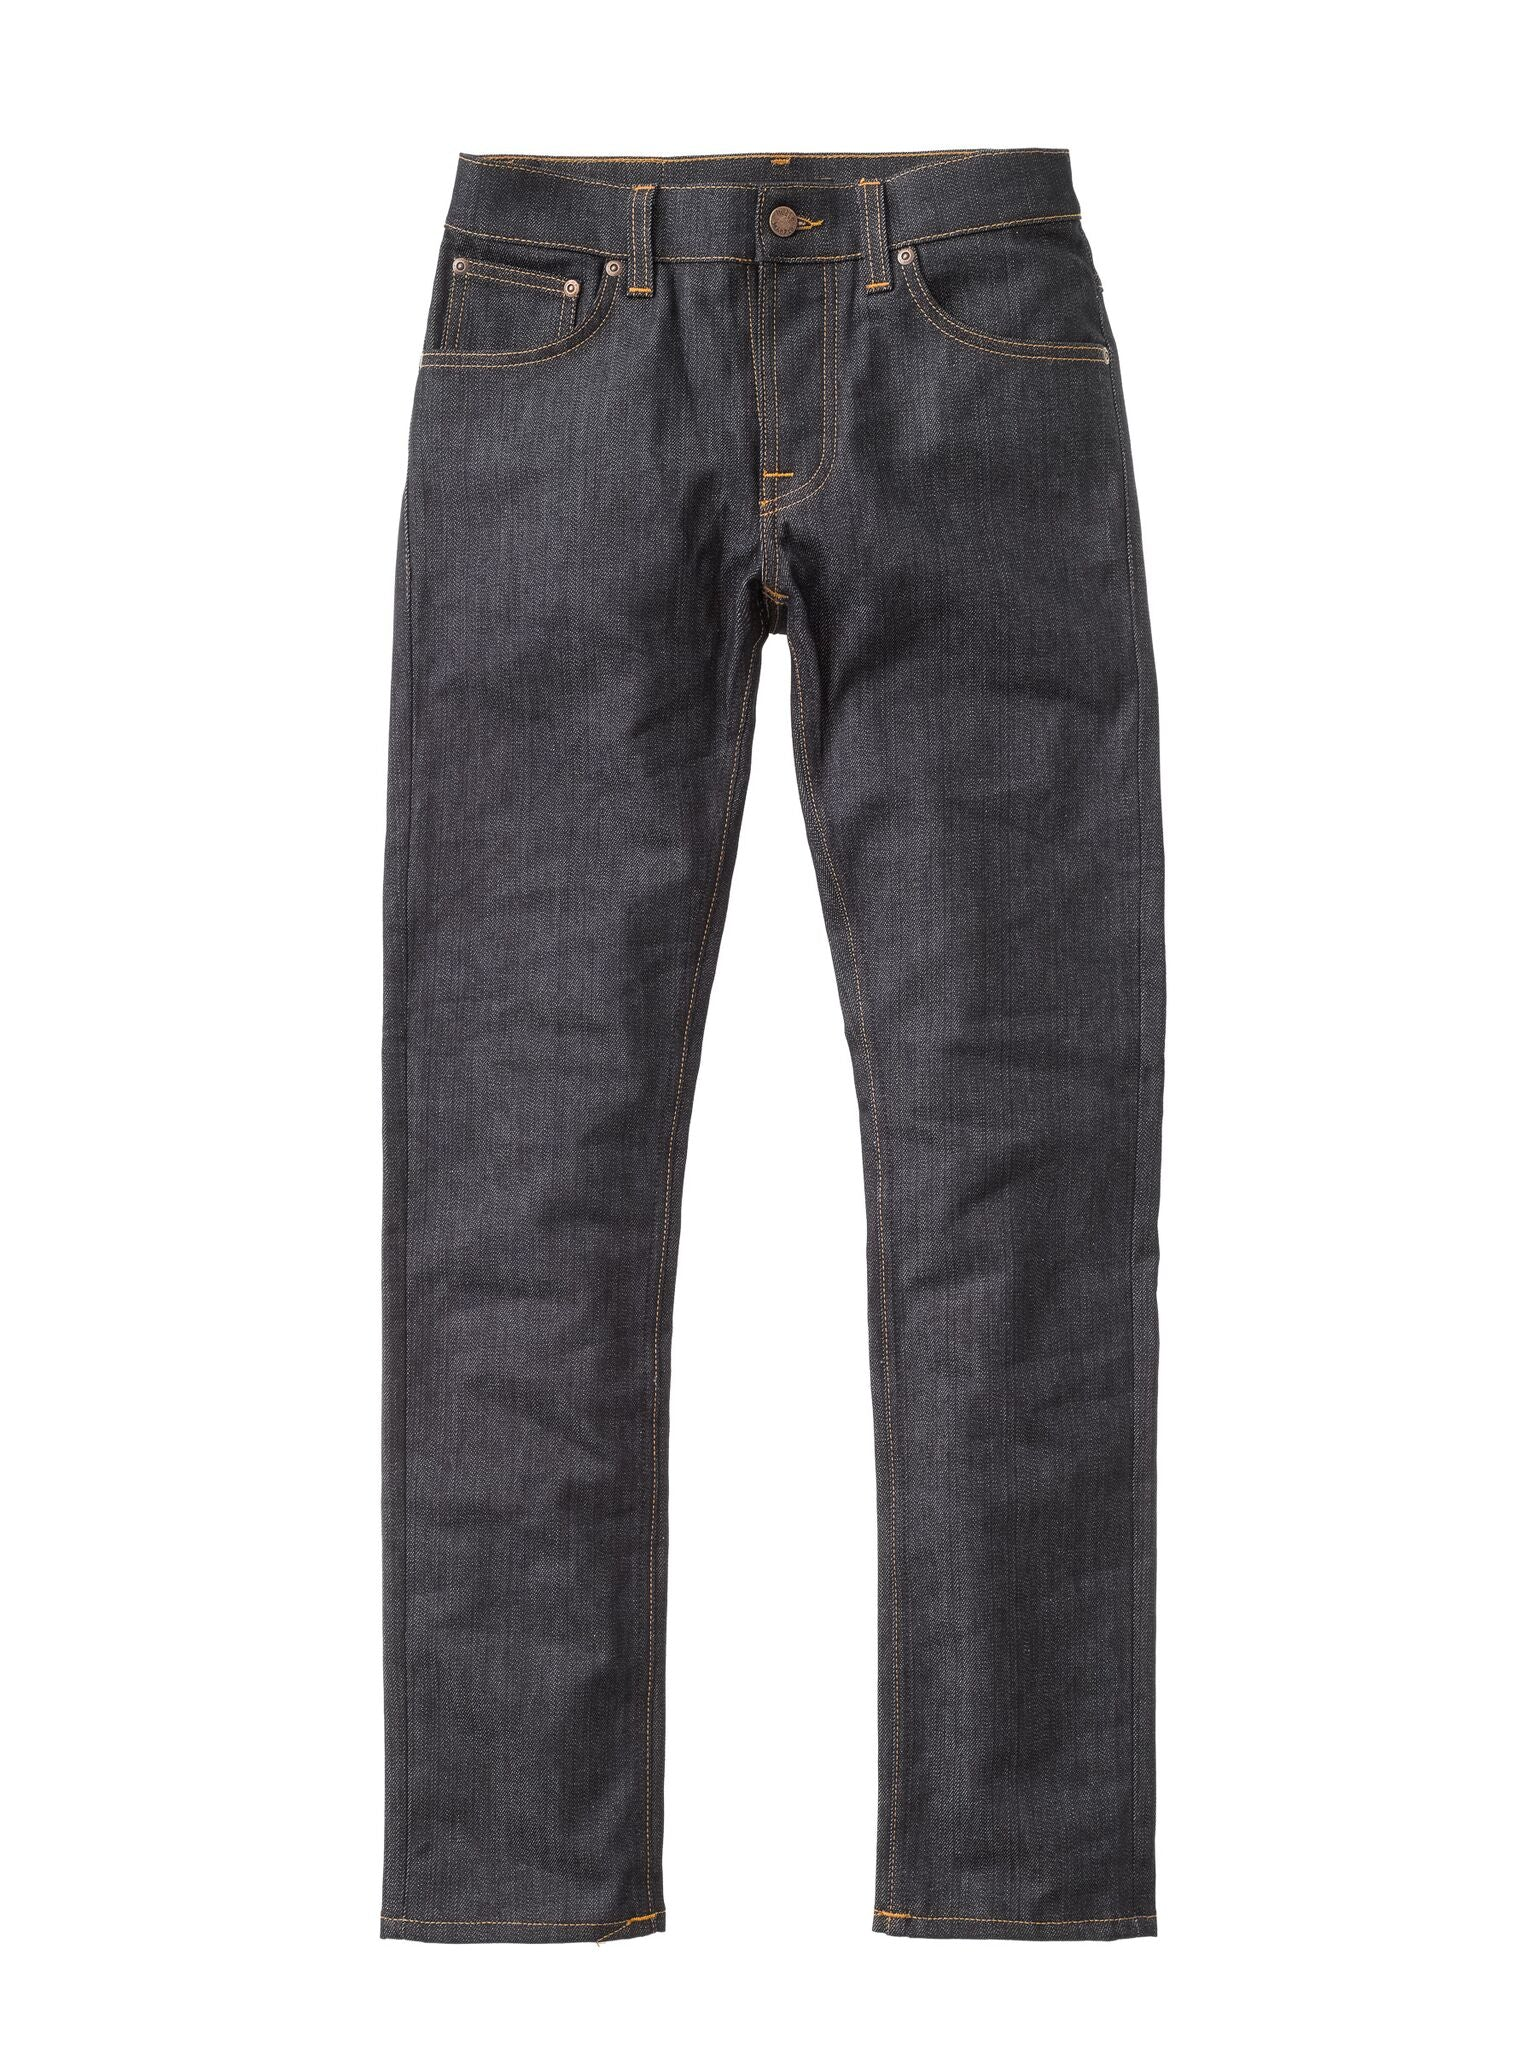 Nudie Grim Tim Dry Open Navy